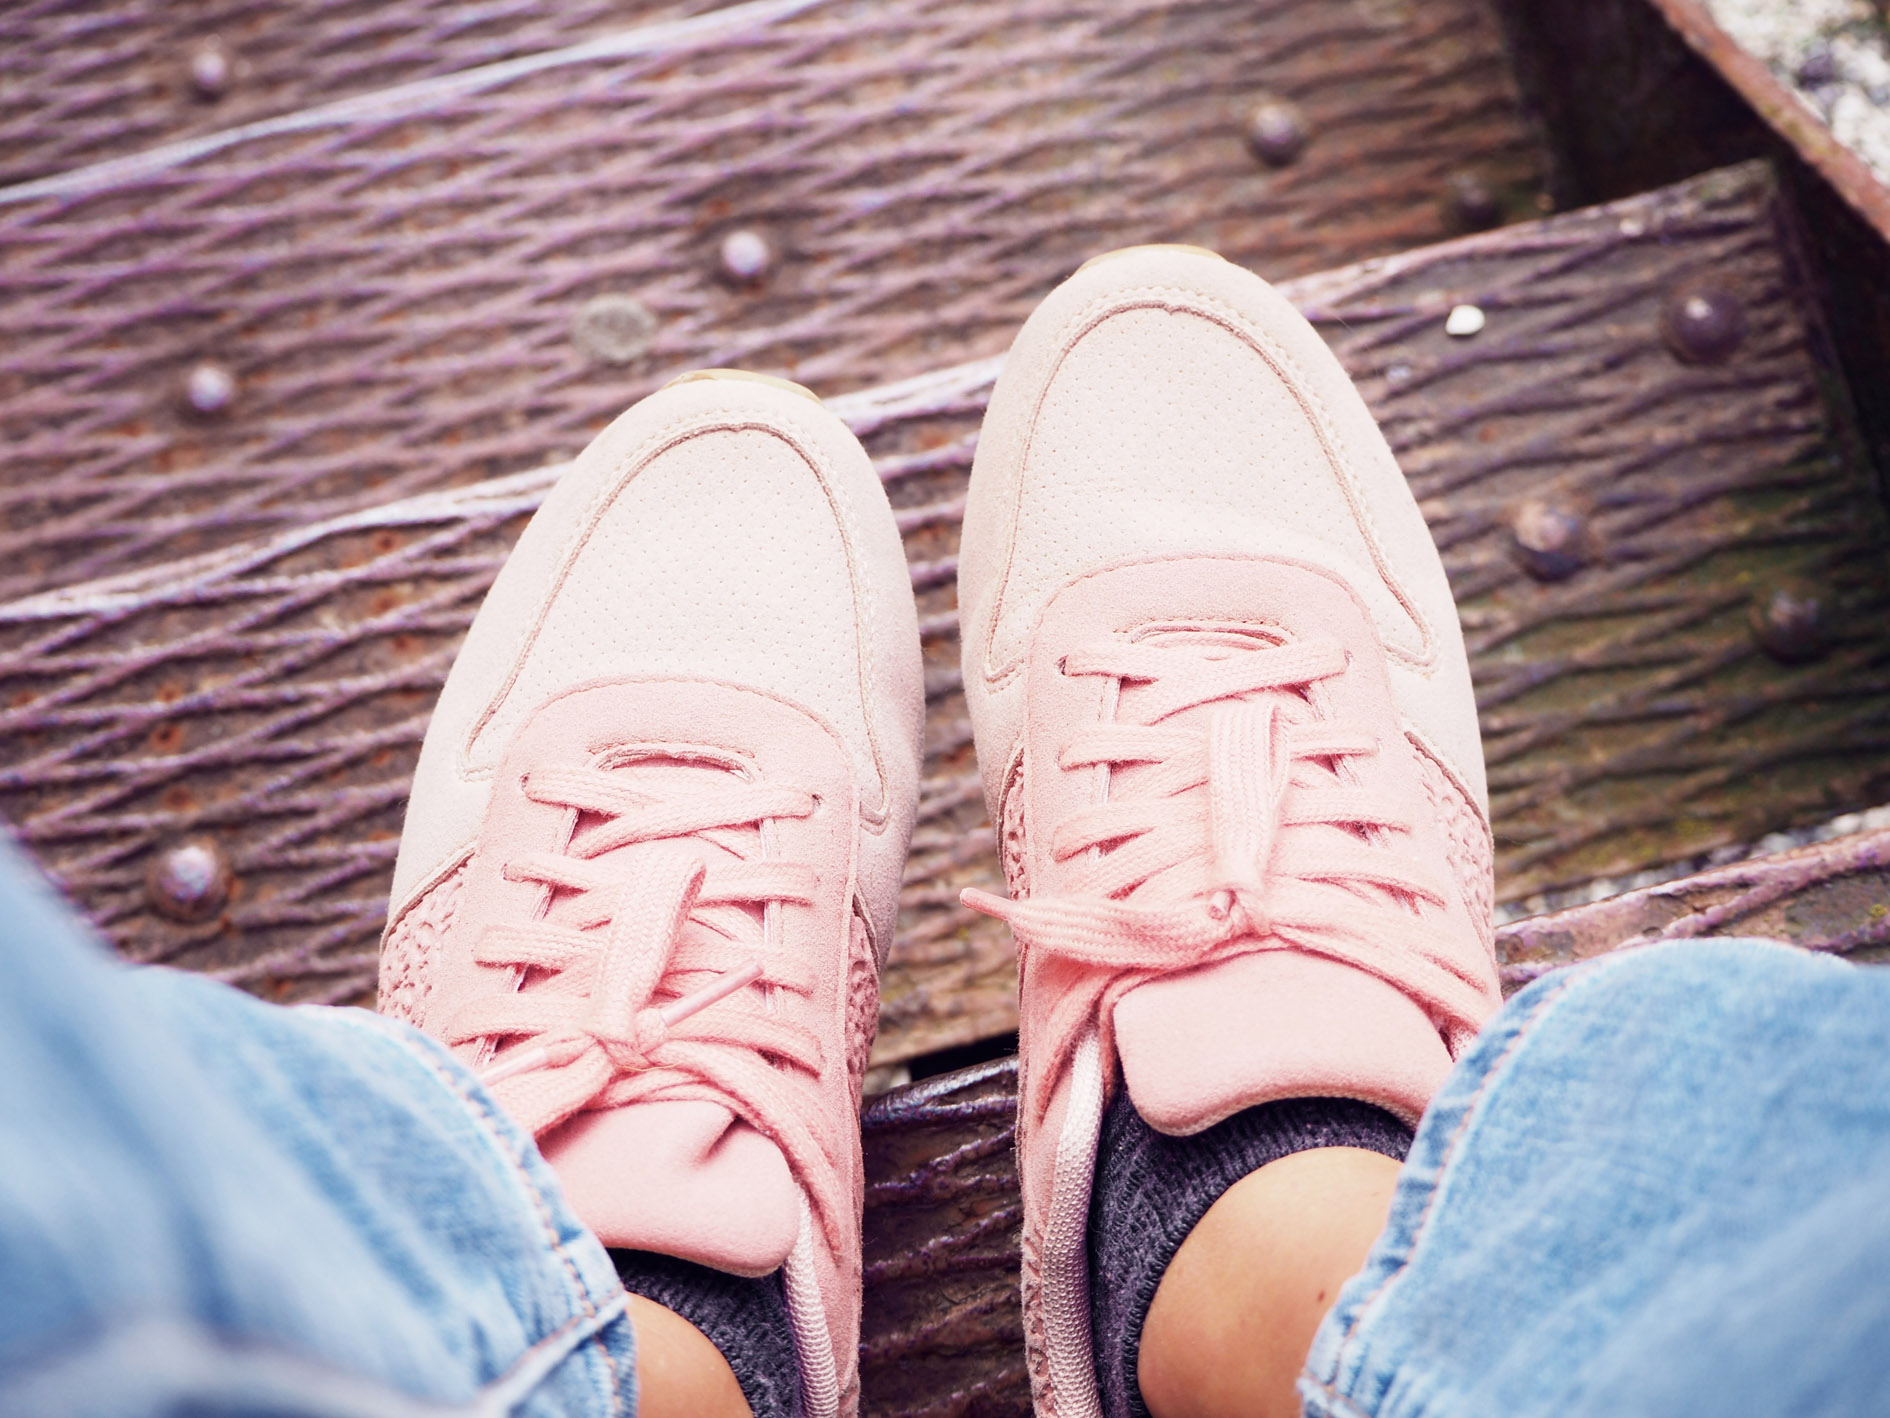 girl boss baskets pimkie chaussette hetm jean tendnaces trends automne 2017 fashion fashionista femme look casual rentree